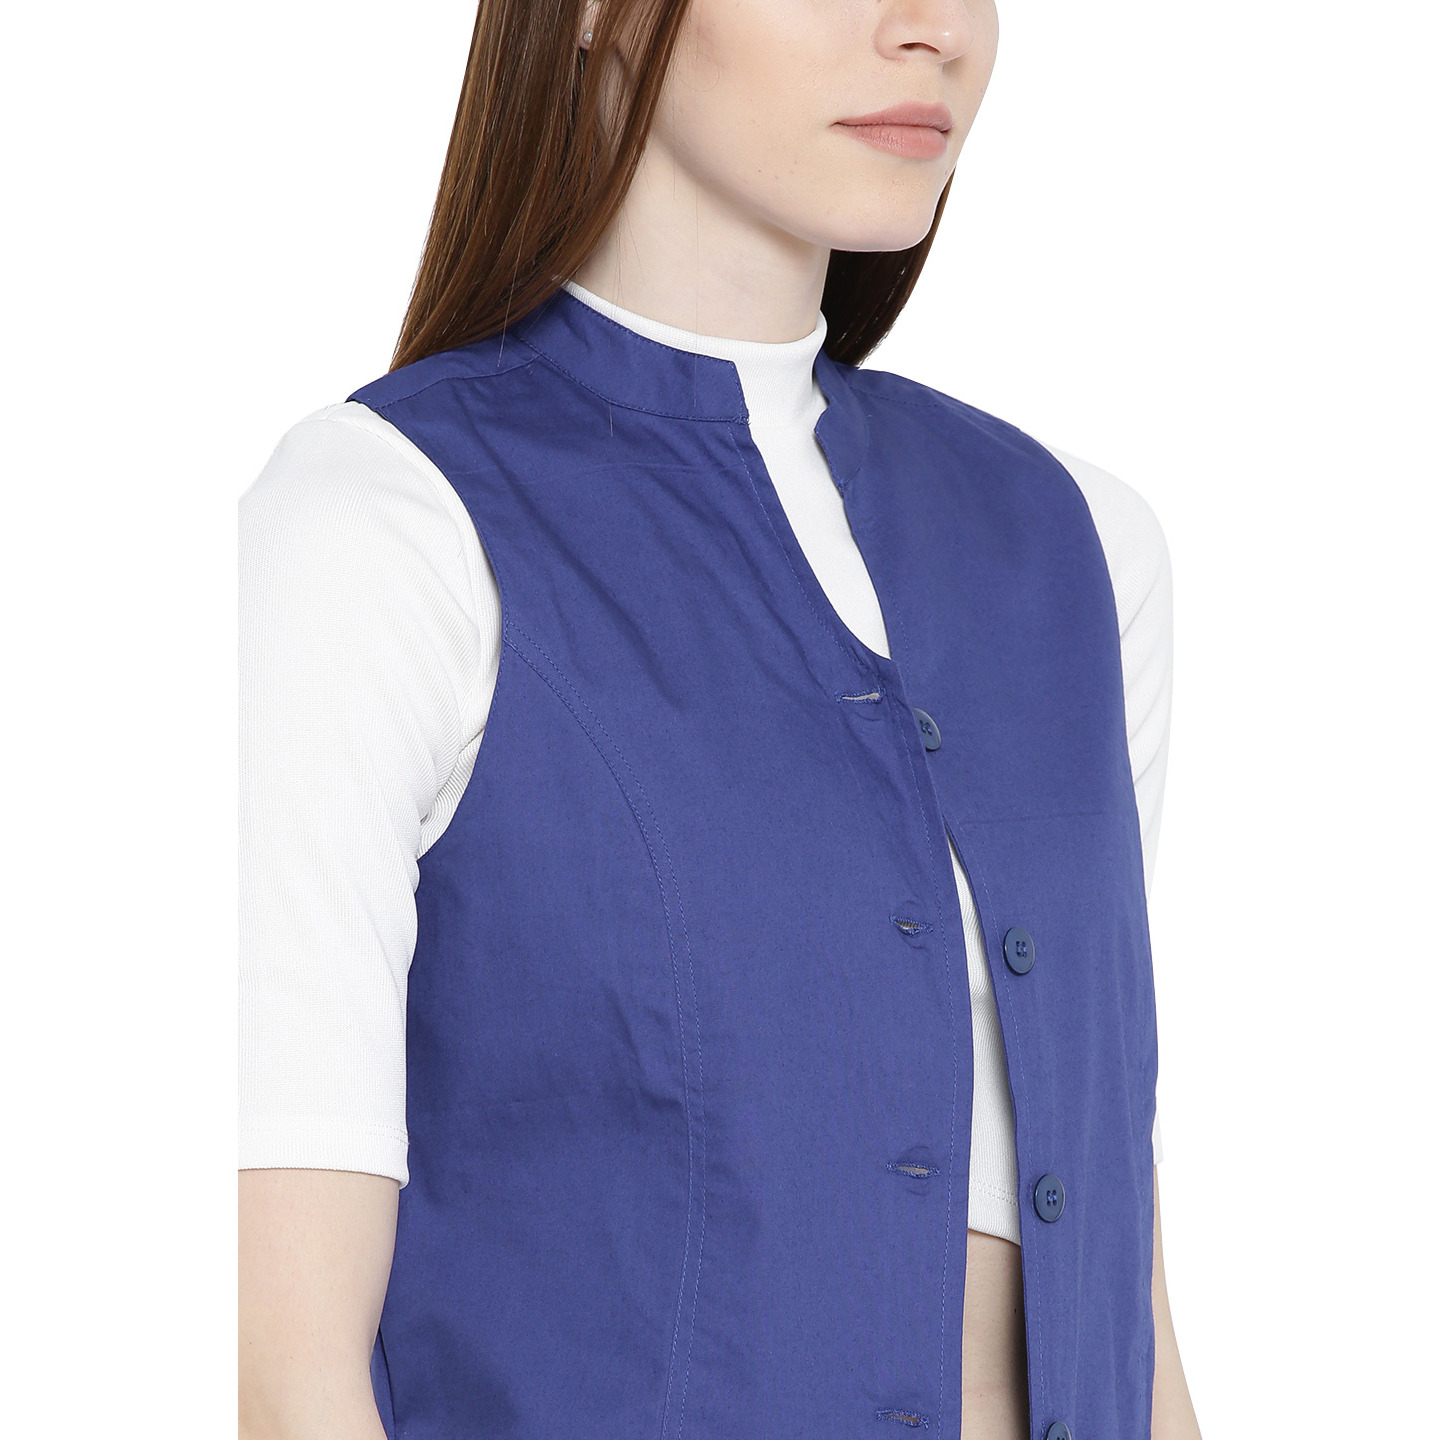 Ayaany Women's Fashion BluePure  Cotton Solid comfort waistcoat